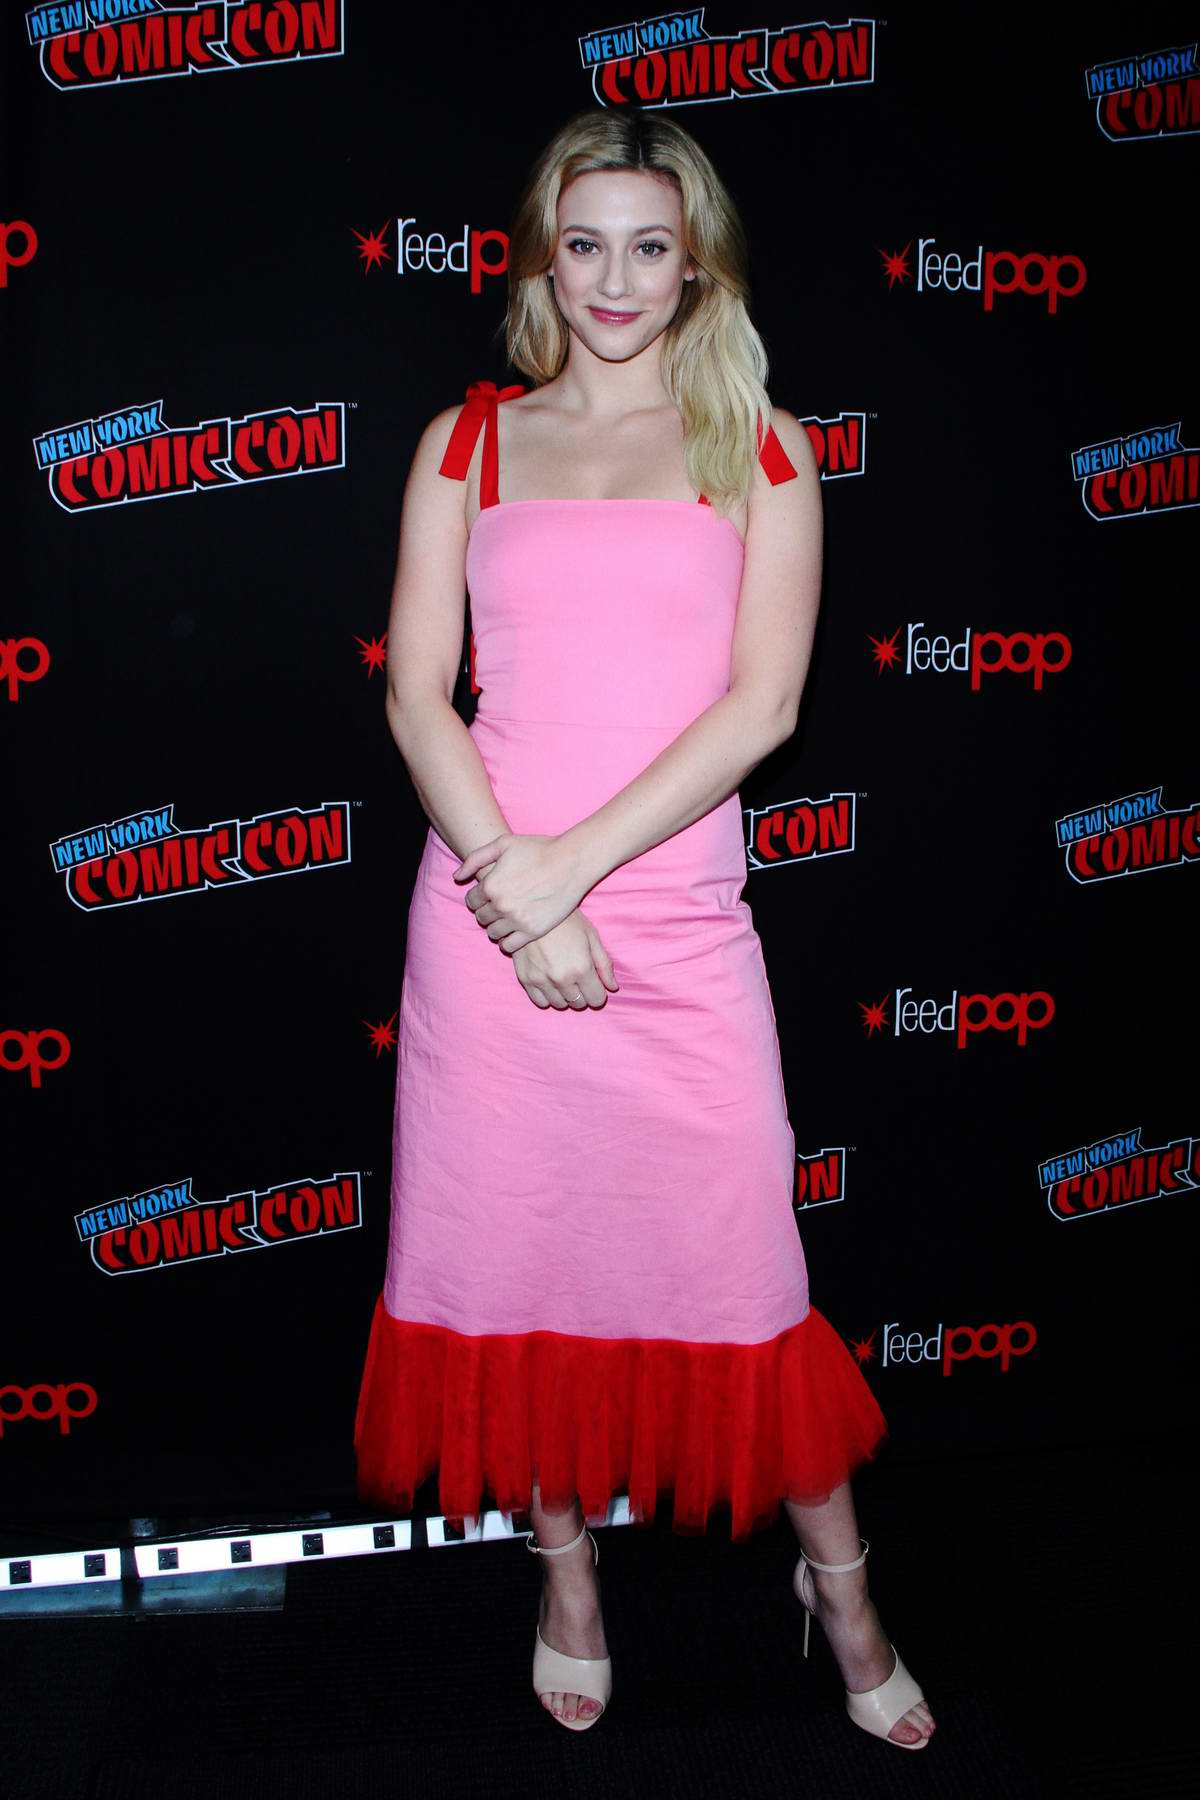 Lili Reinhart attends 'Riverdale' photocall at New York Comic Con 2018 (NYCC 2018) in New York City